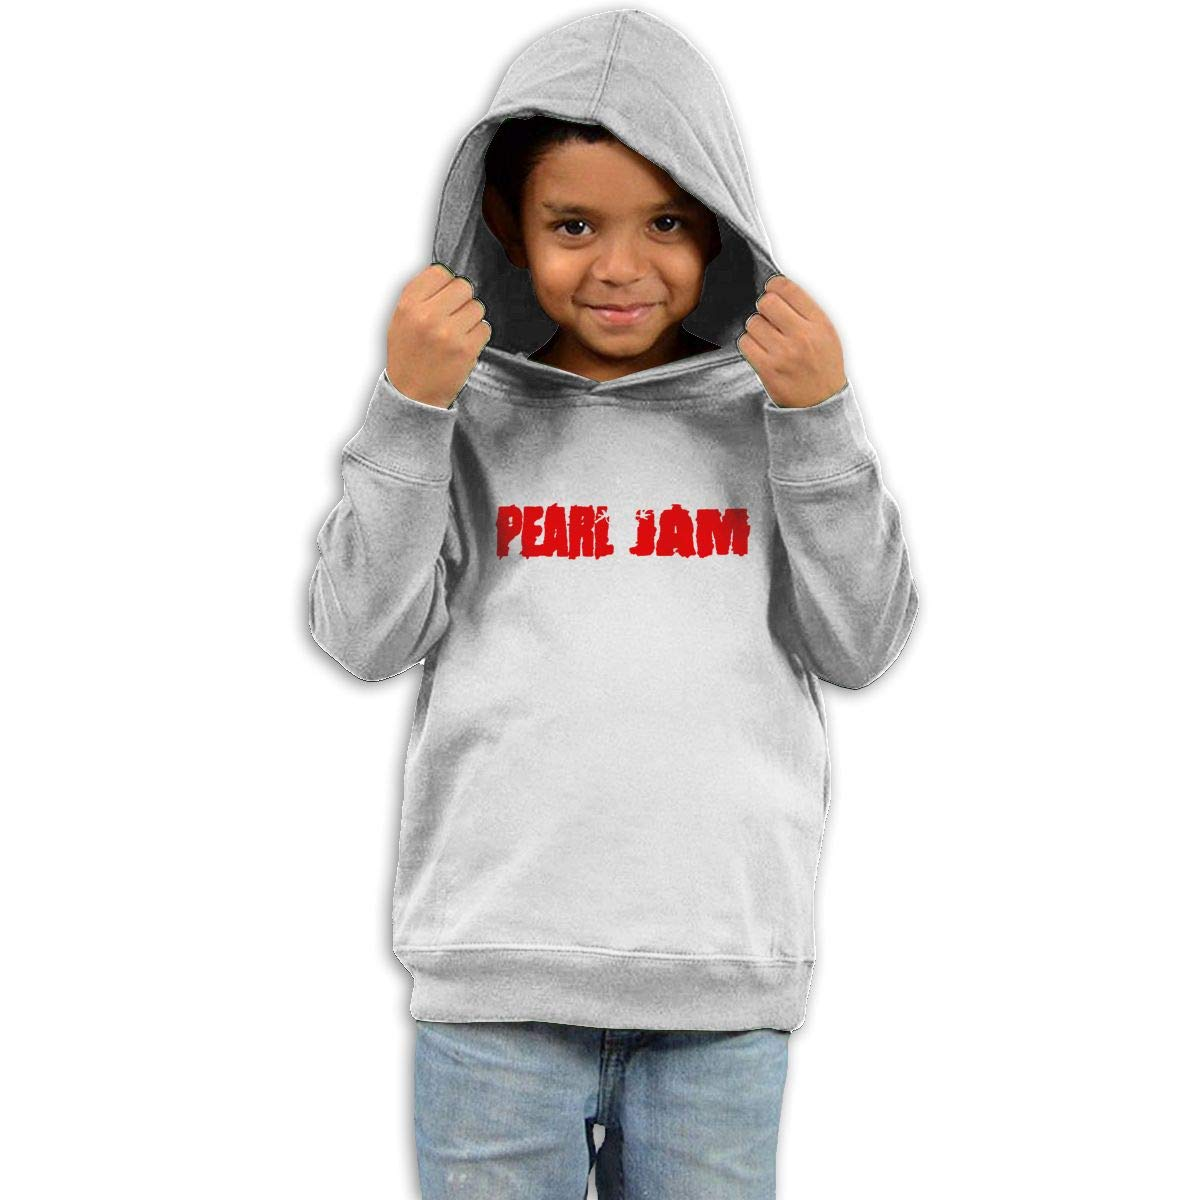 Stacy J. Payne Toddler Pearl Jam Cool Hoody41 White